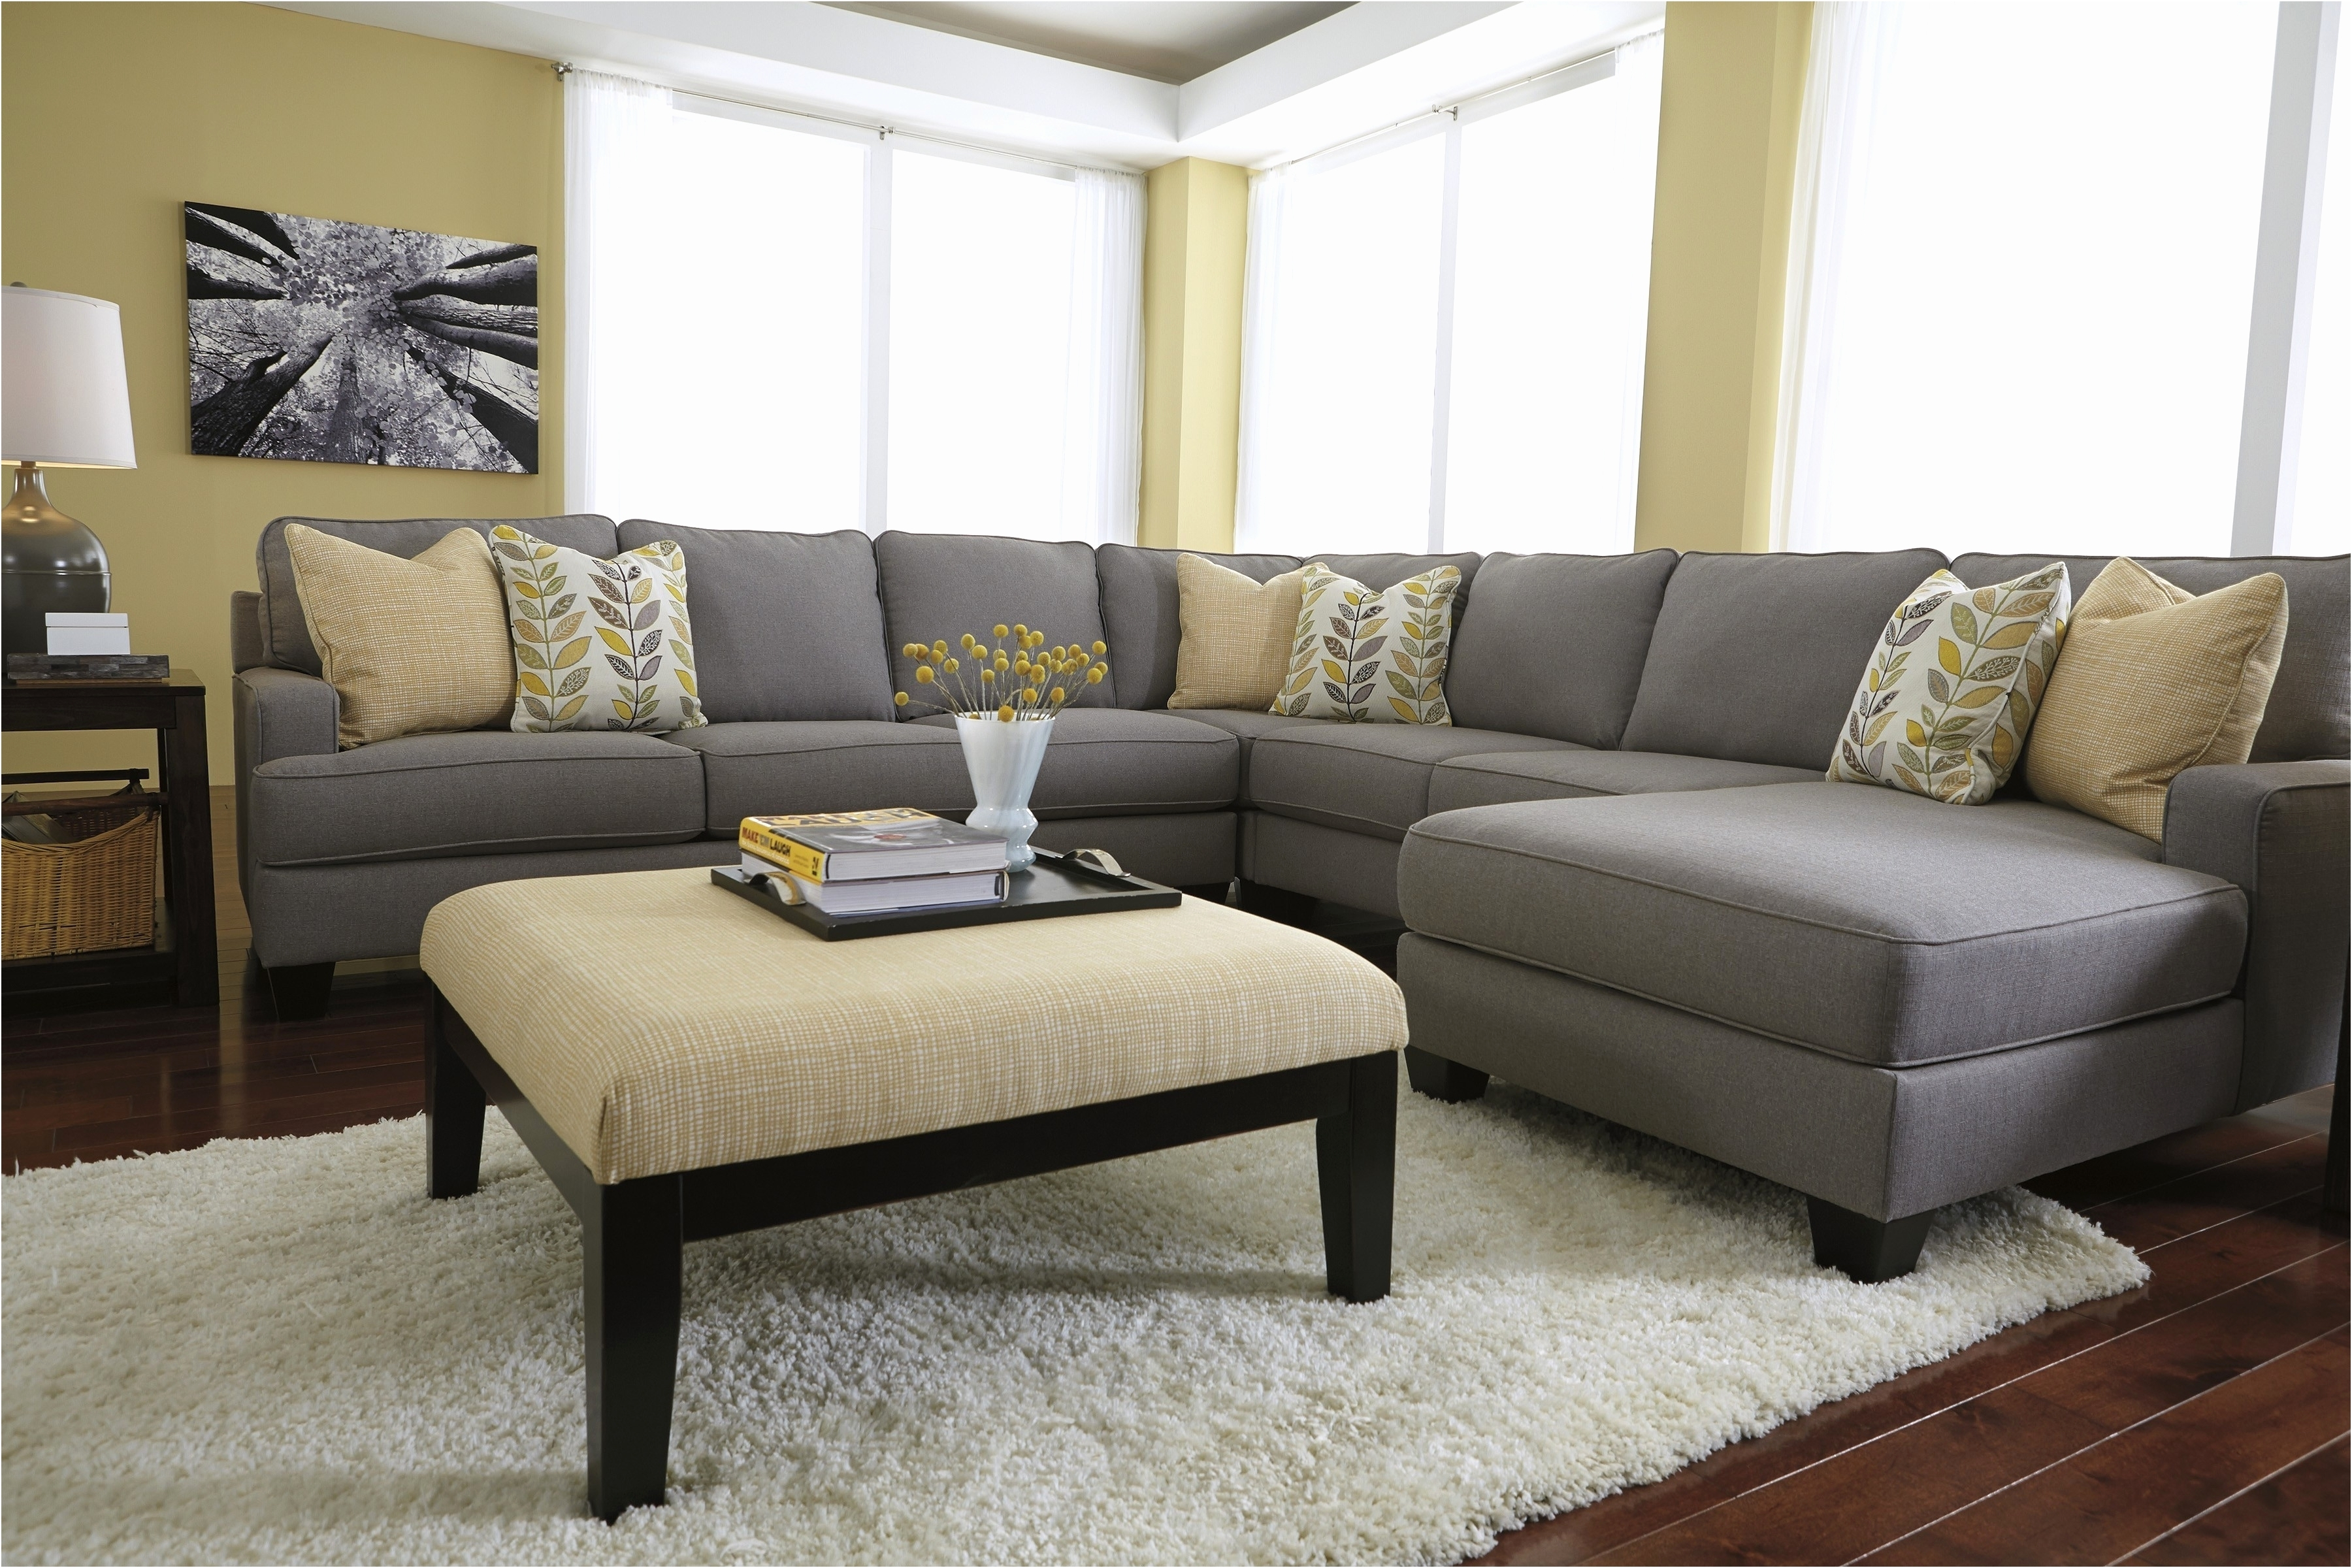 Well Liked Oversized Sectional Sofas For Sale Sofa Set Huge Couches Toronto Within Huge Sofas (View 19 of 20)